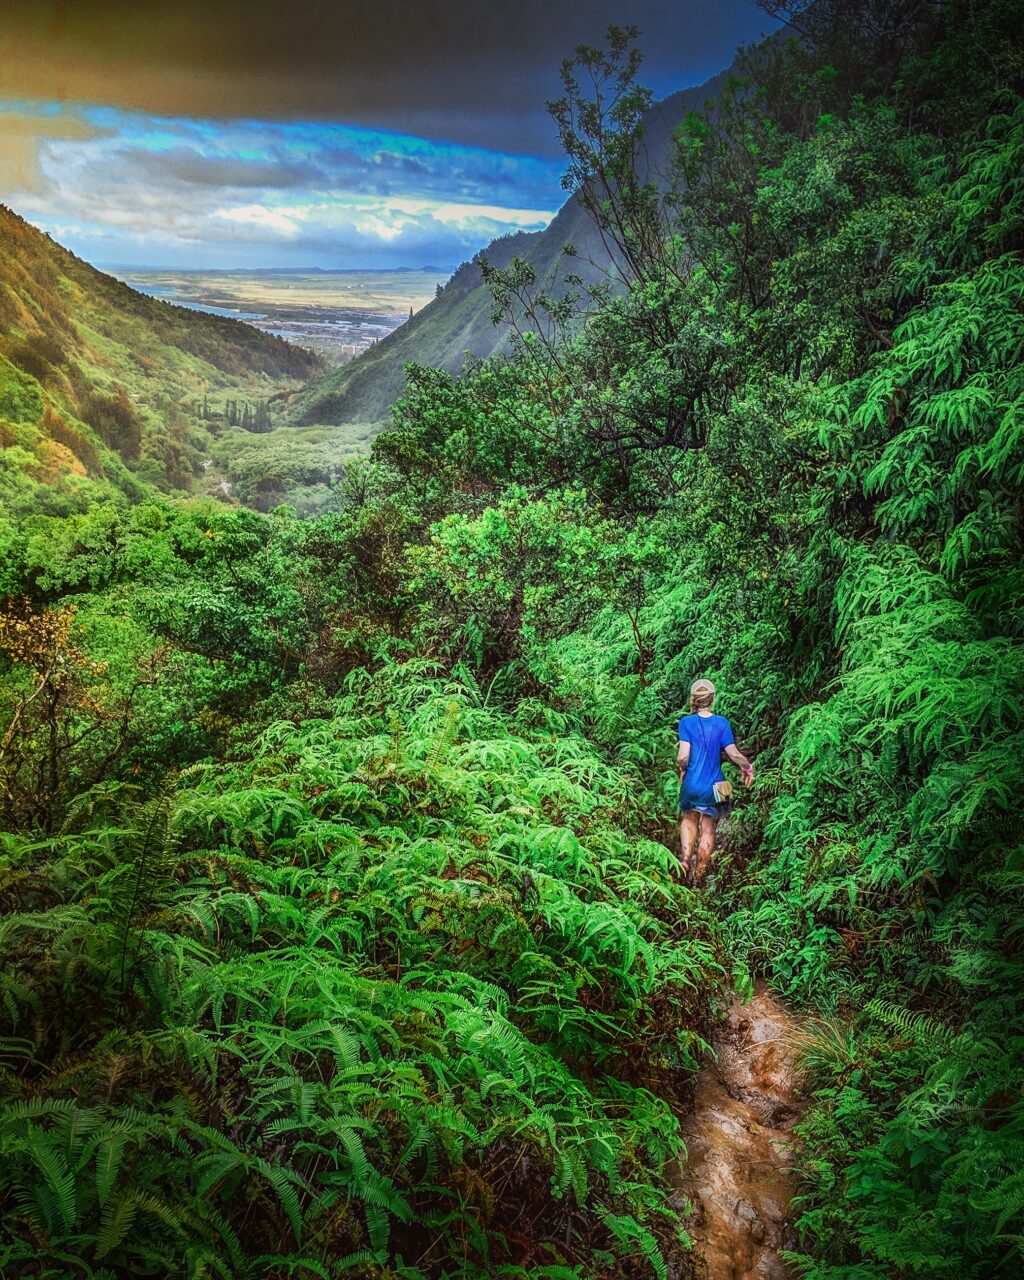 Woman hiking on dirt Tableland Secret Trail in mountainous Hawaiian jungle, Iao Valley, Maui.